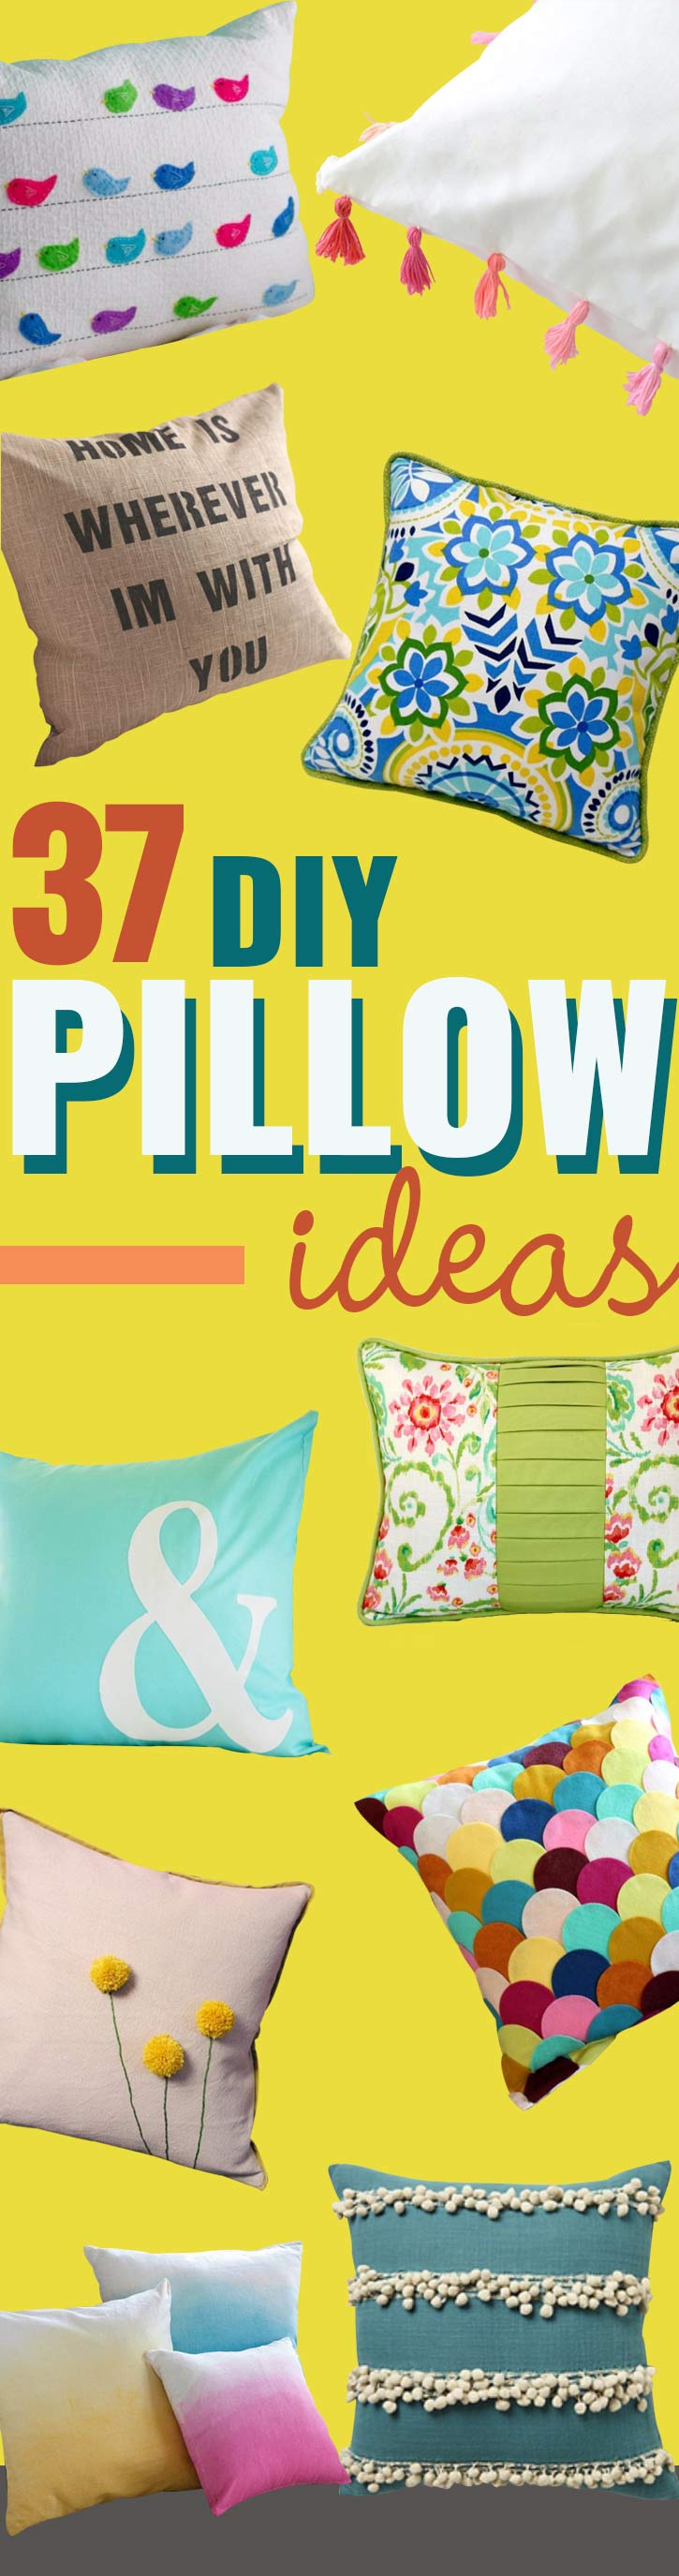 37 DIY Pillows That Will Upgrade Your Decor In Minutes DIY Joy